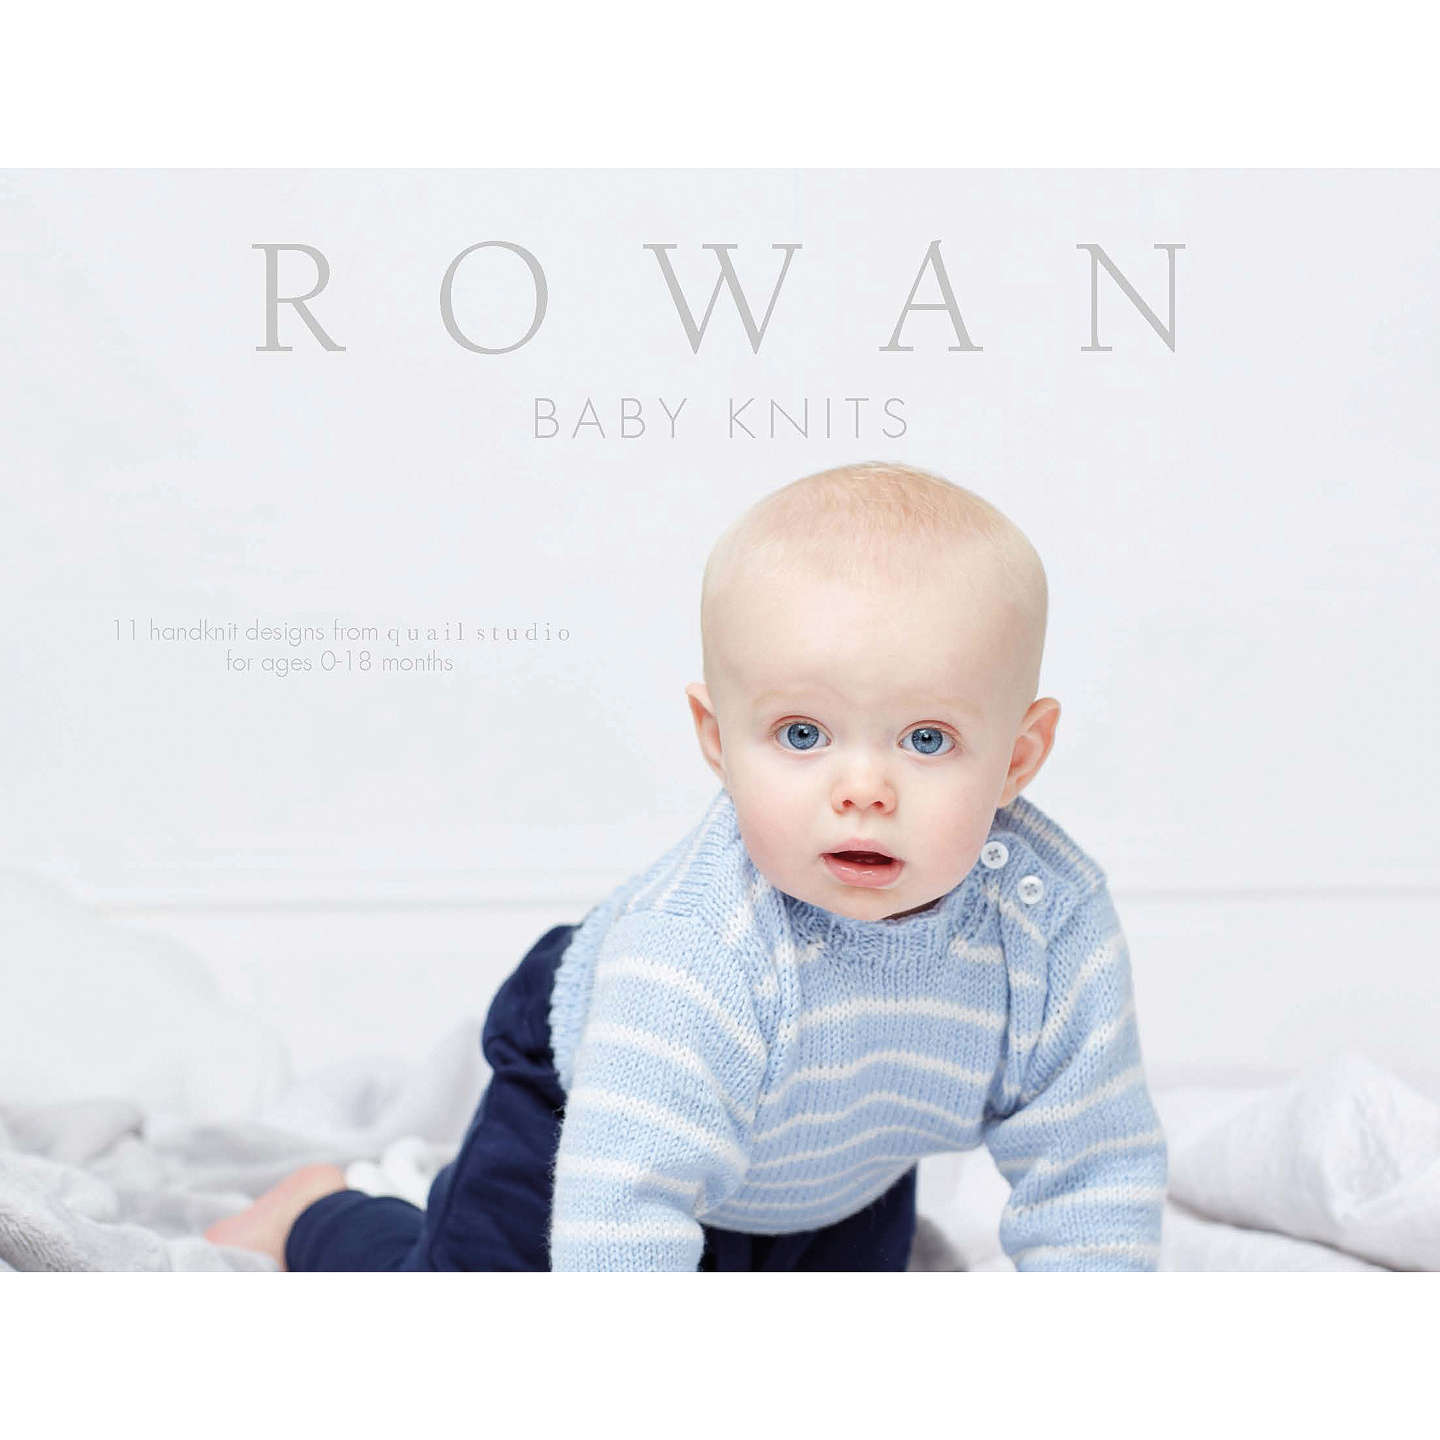 Rowan Baby Knits Knitting Pattern Book at John Lewis